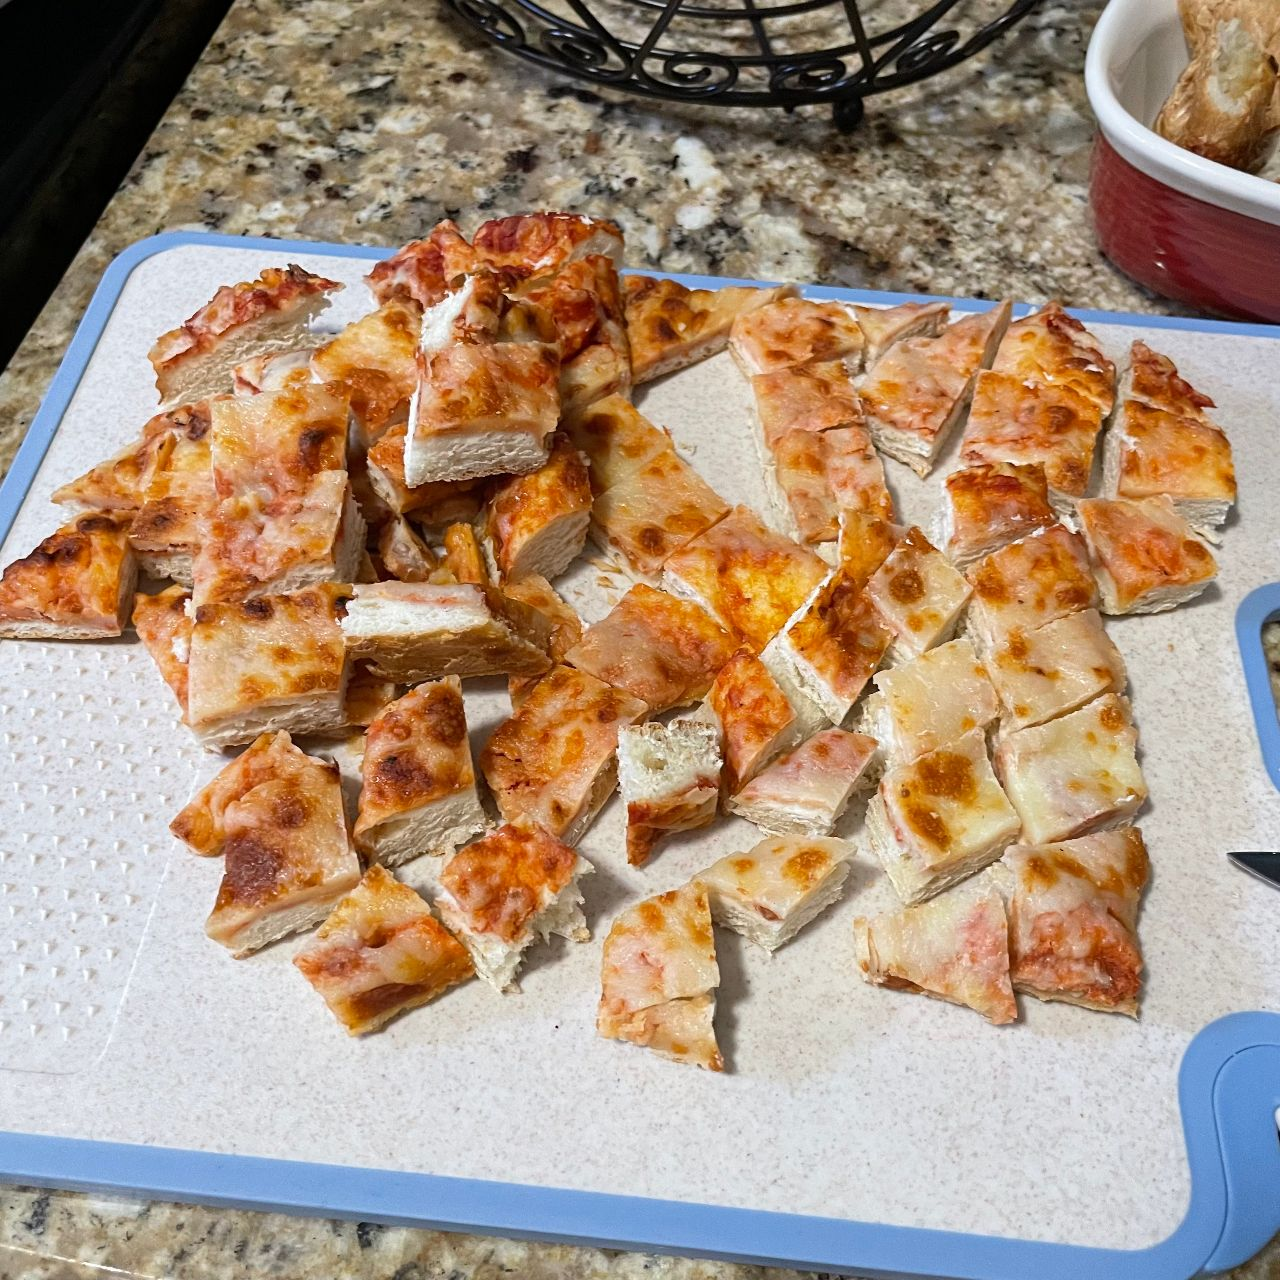 Diced pizza with crust removed for breadsticks.